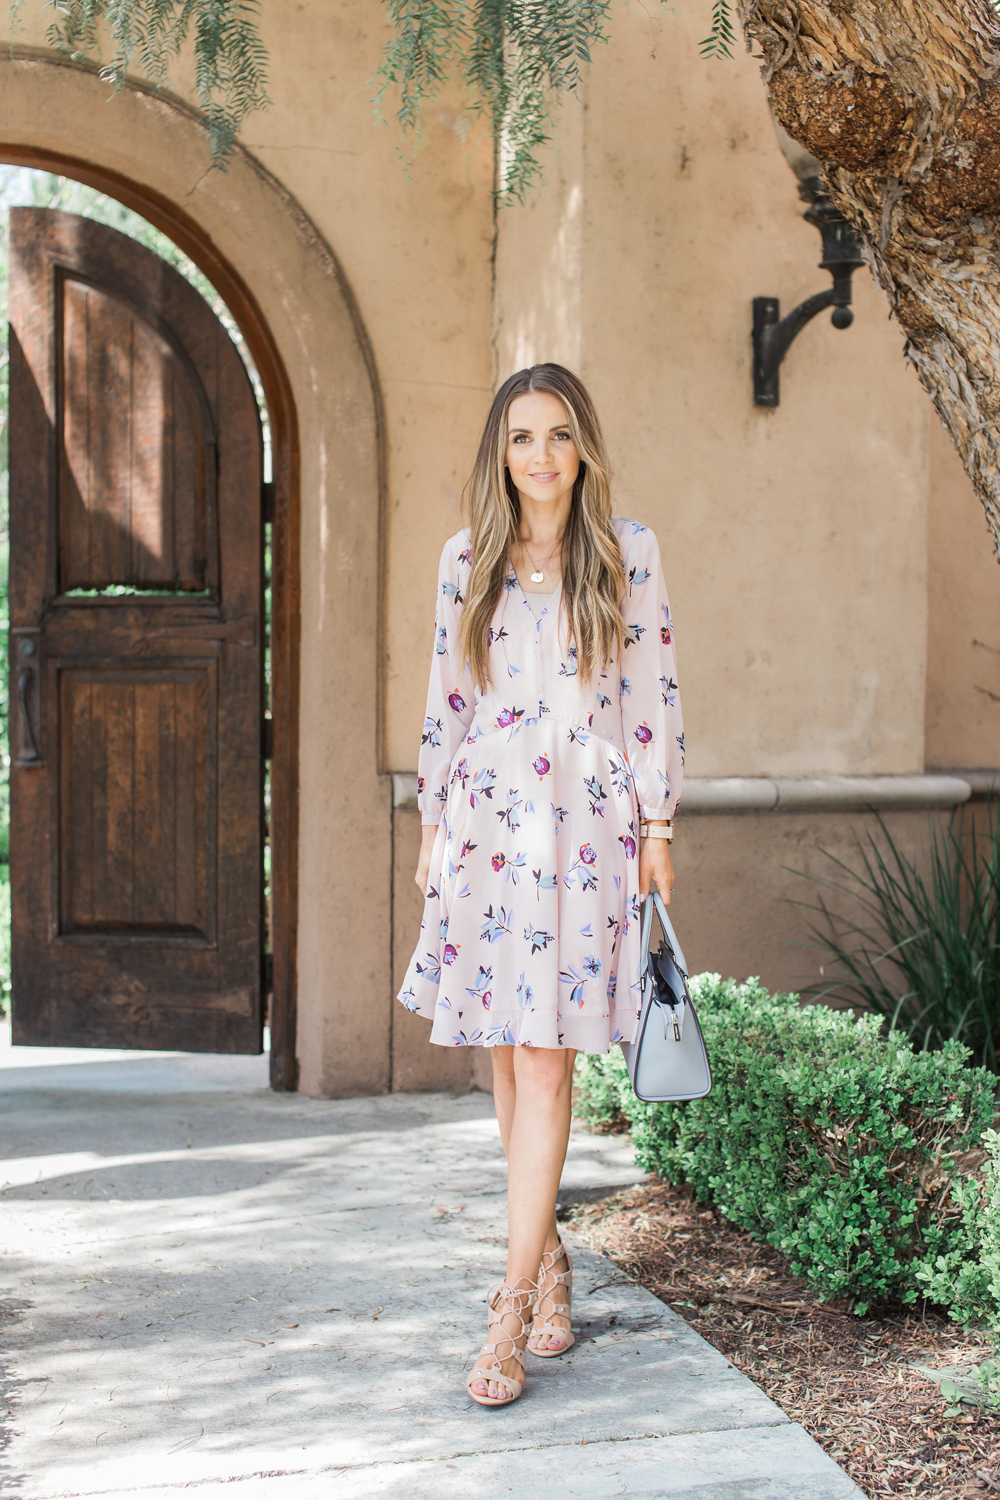 Merrick's Art | Rebecca Taylor Floral Dress